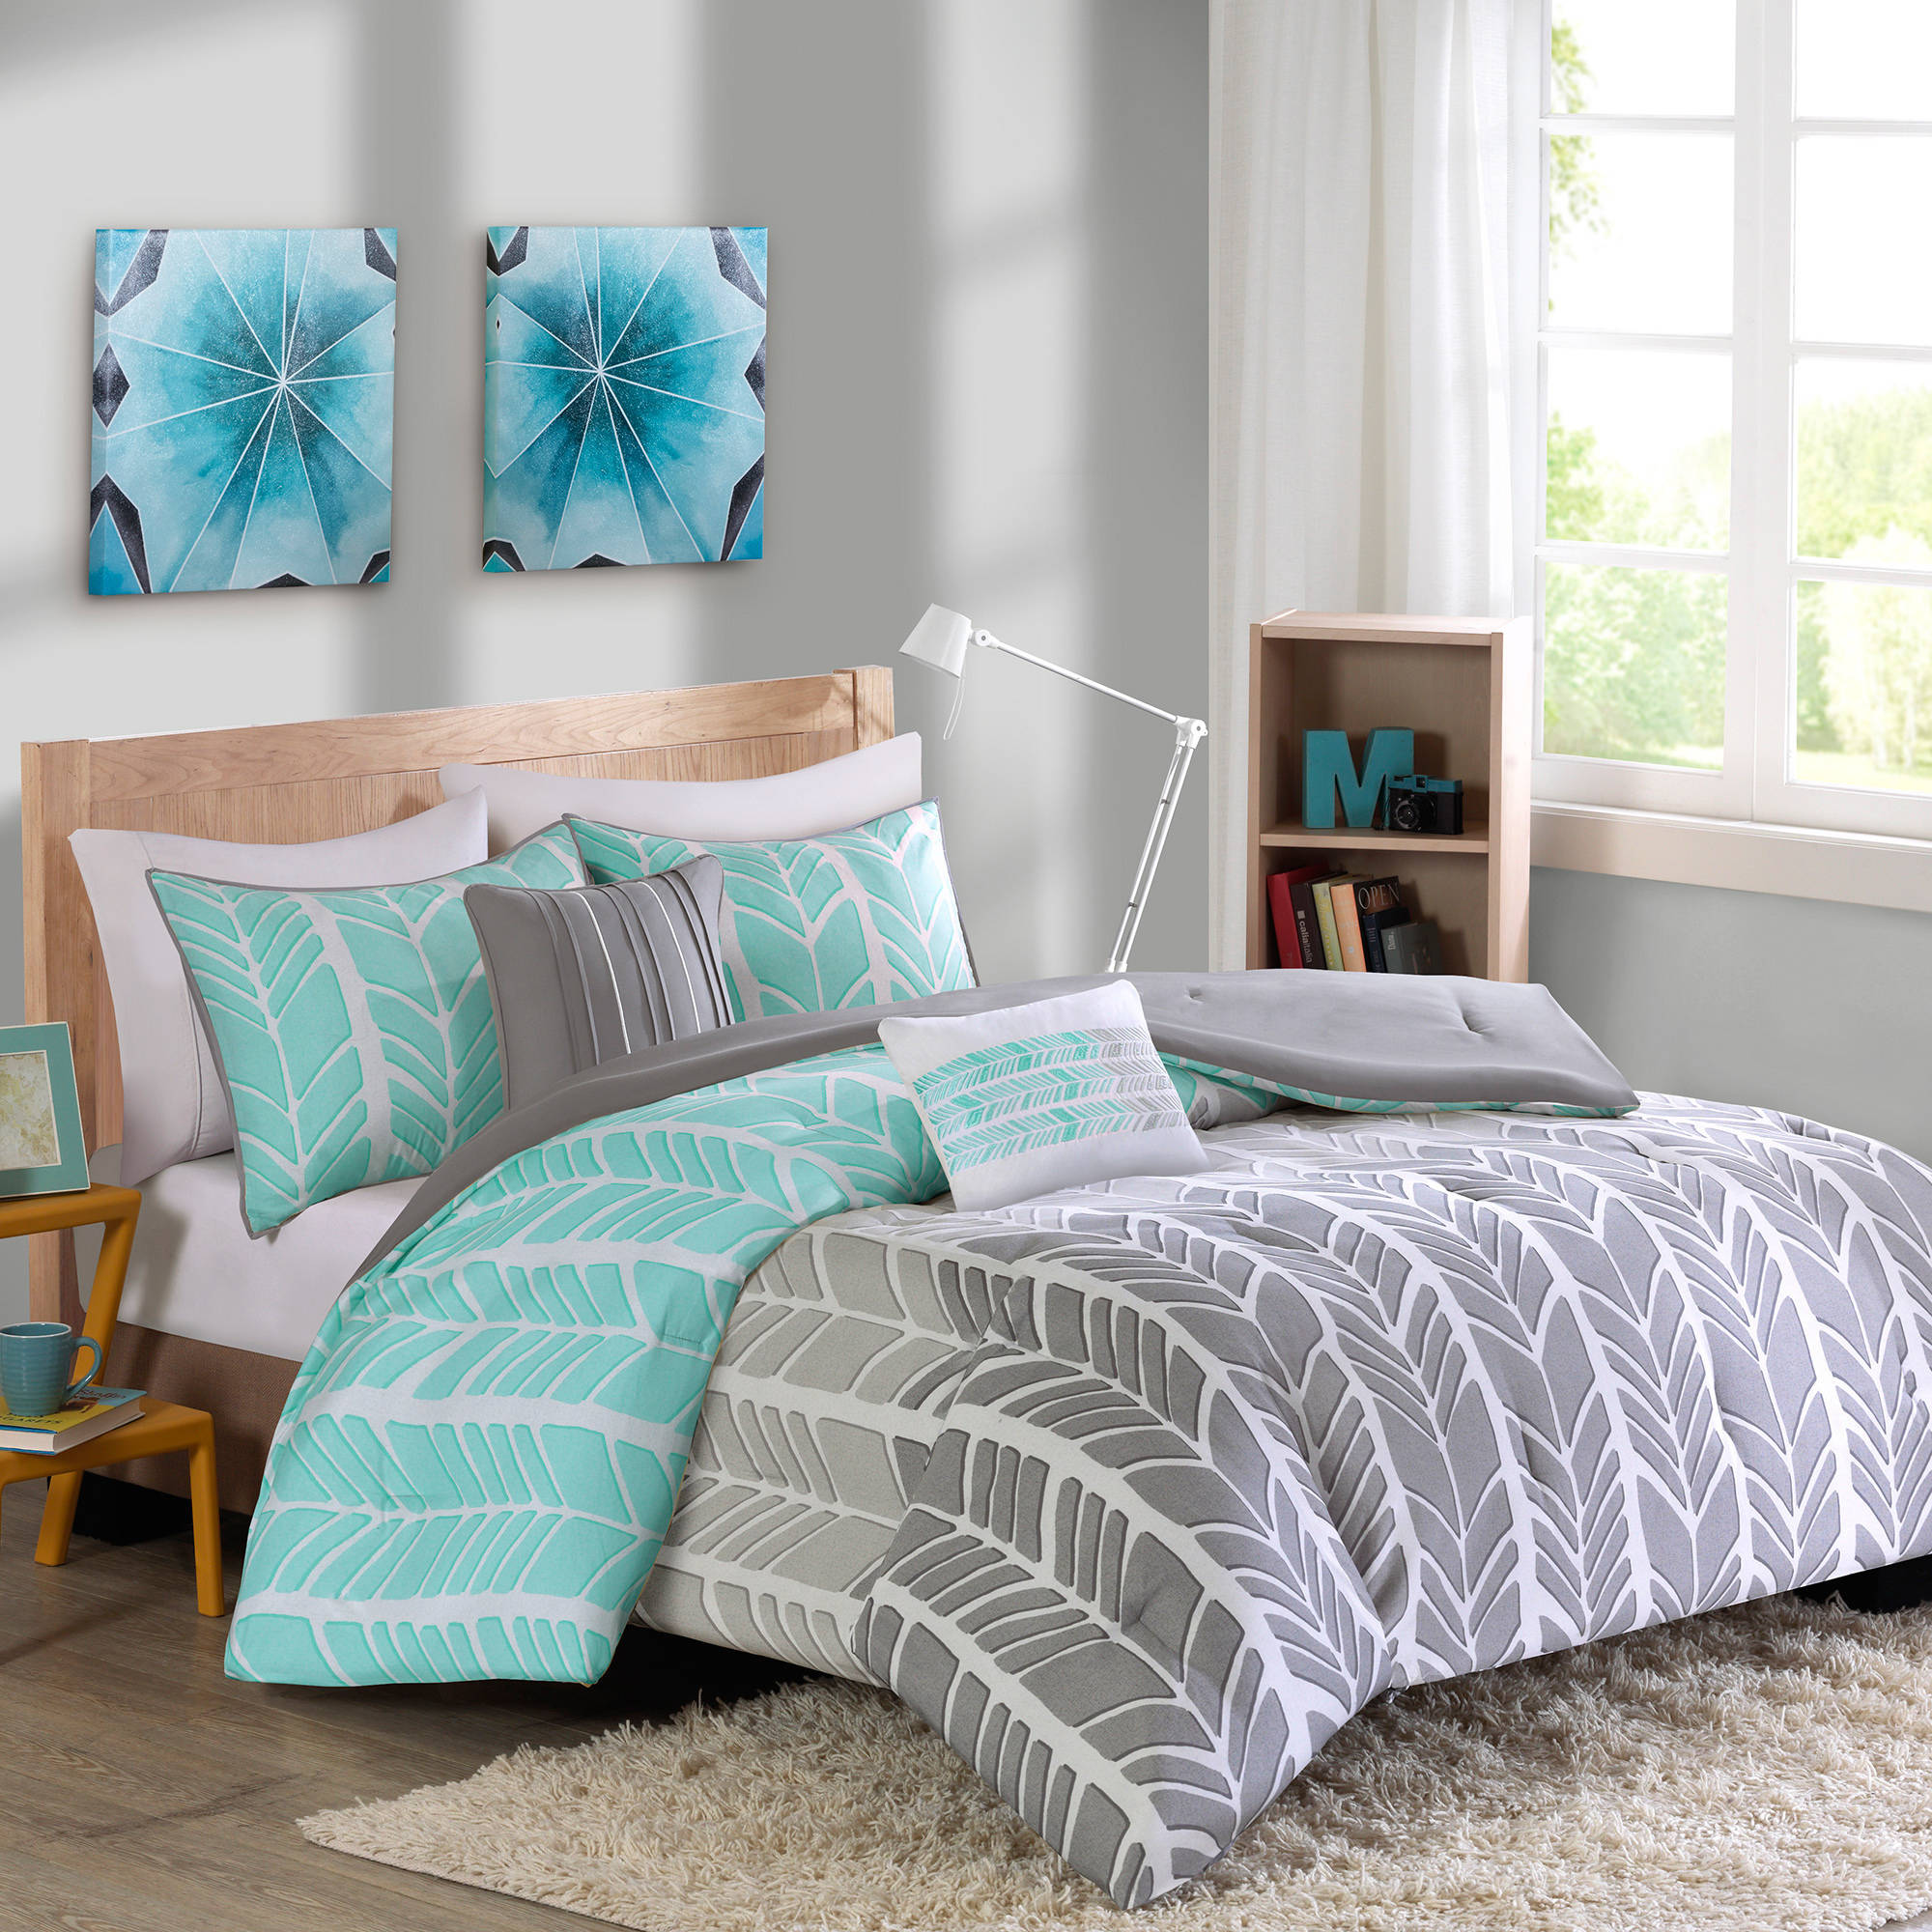 bedding piece aqua metallic khloe printed frame from brilliant interior hotel collection twin silver intended popular xl for intelligent embroidered created comforter design grey